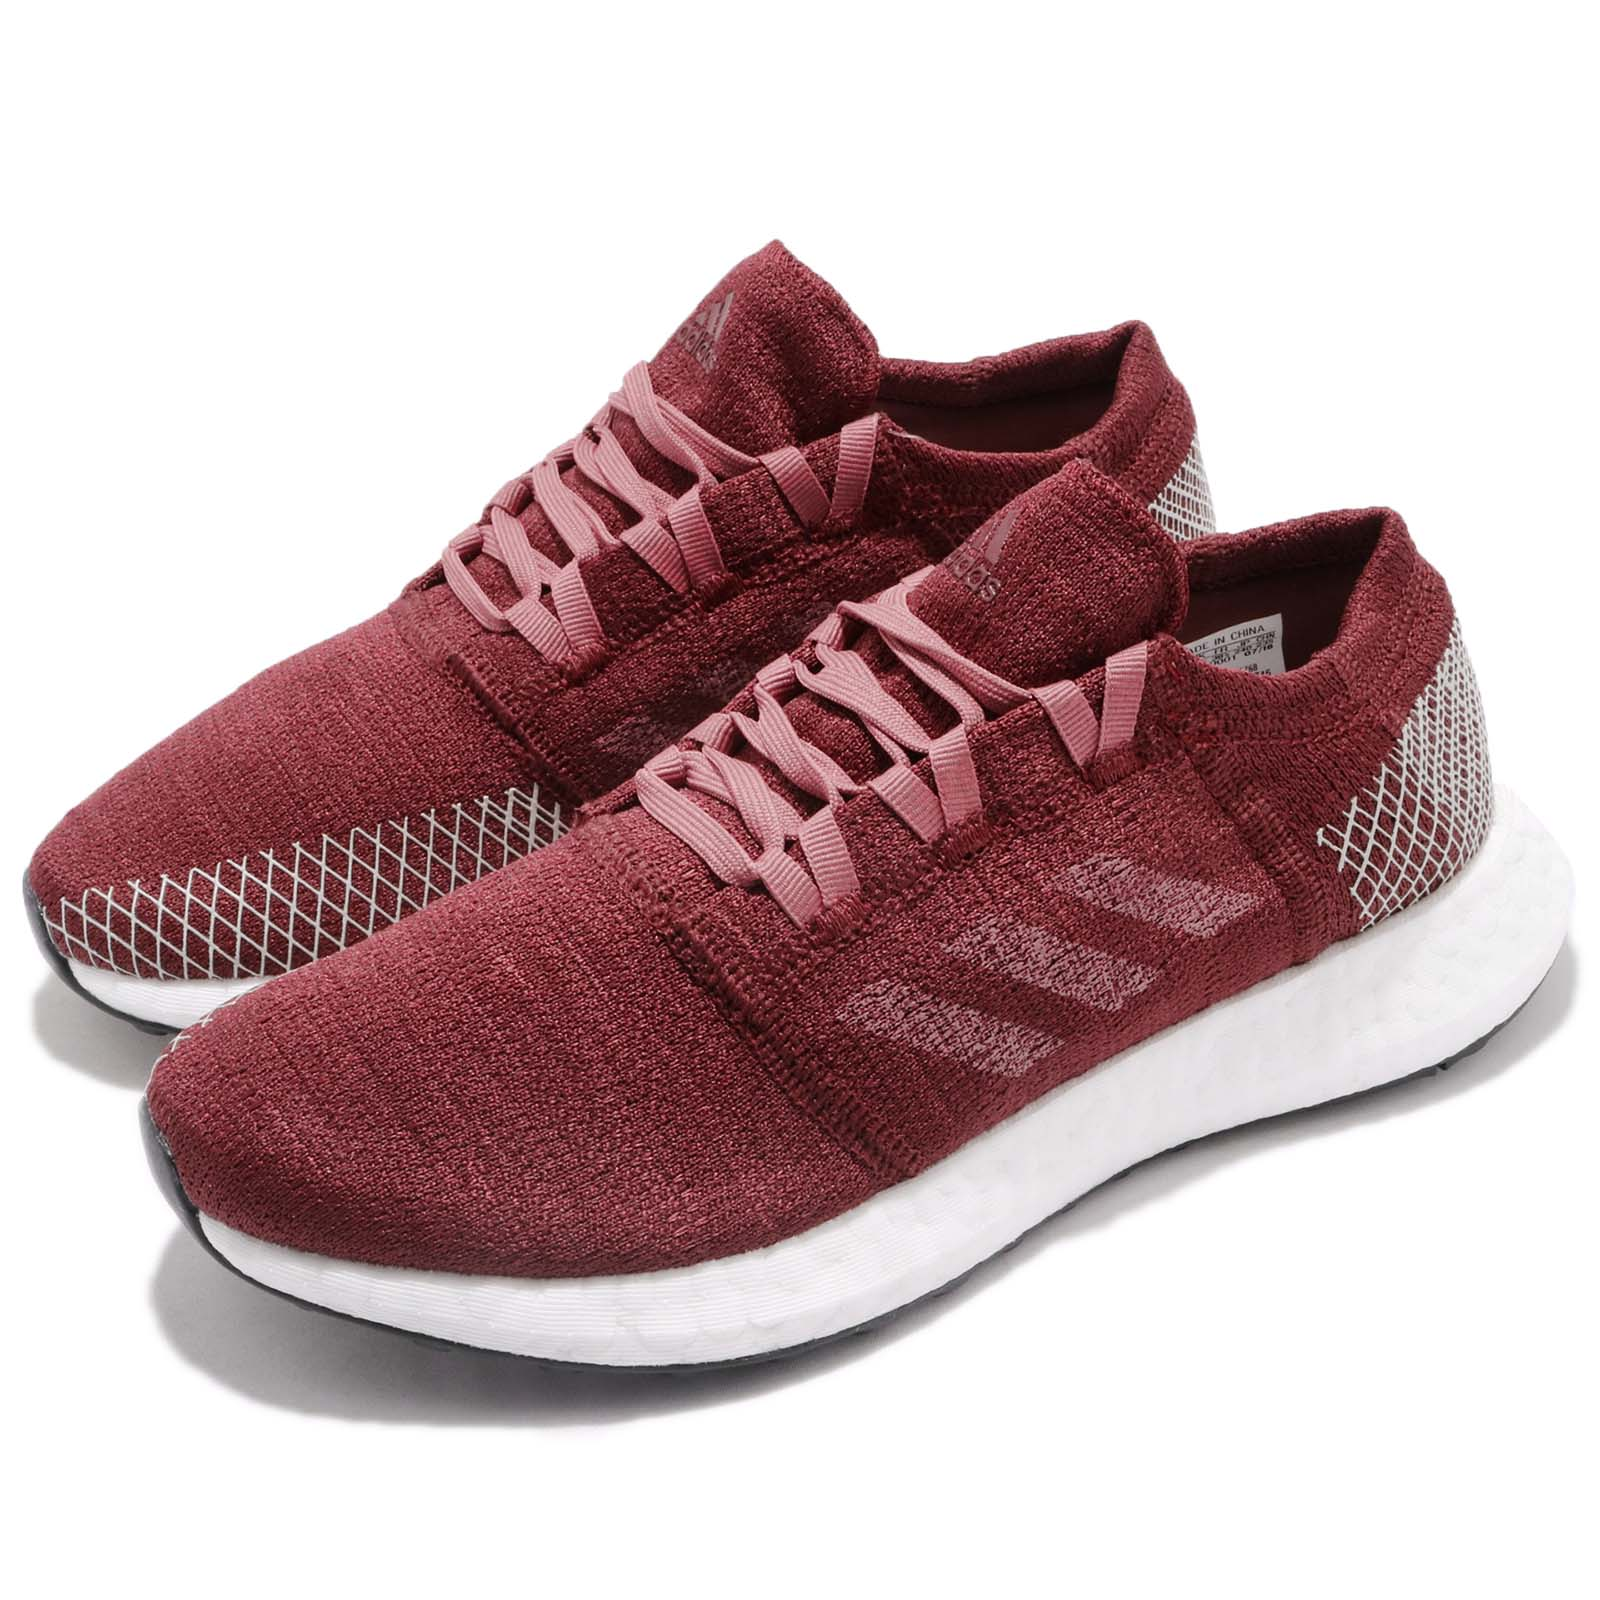 e44c921fb739d Details about adidas PureBOOST Go W Noble Trace Maroon Women Running Shoes  Sneakers B75768